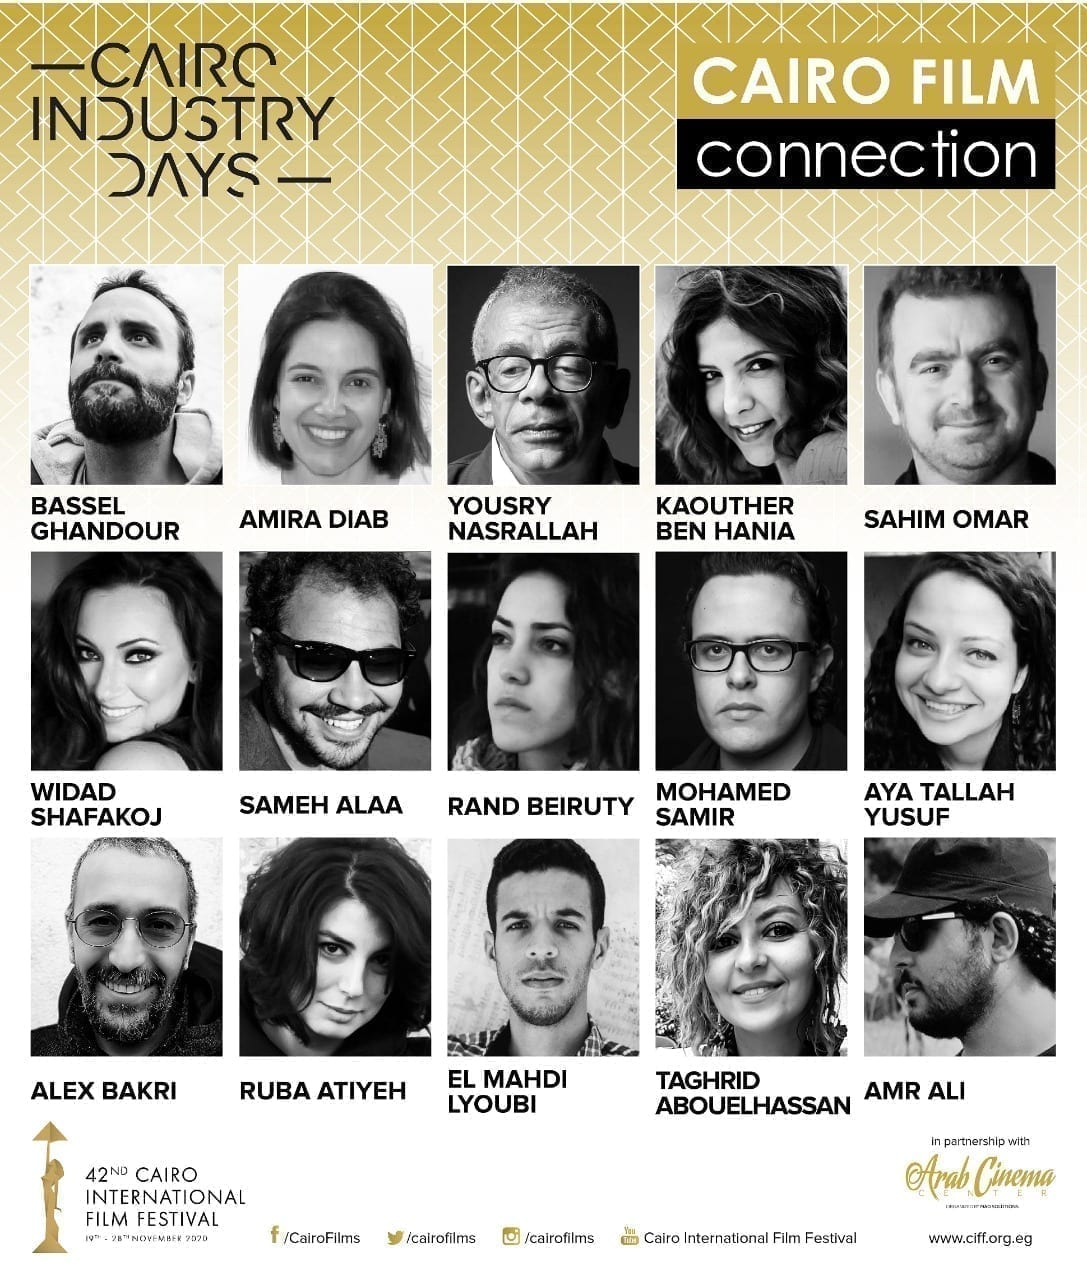 Cairo Film Connection Presents $250,000+ Worth of Awards